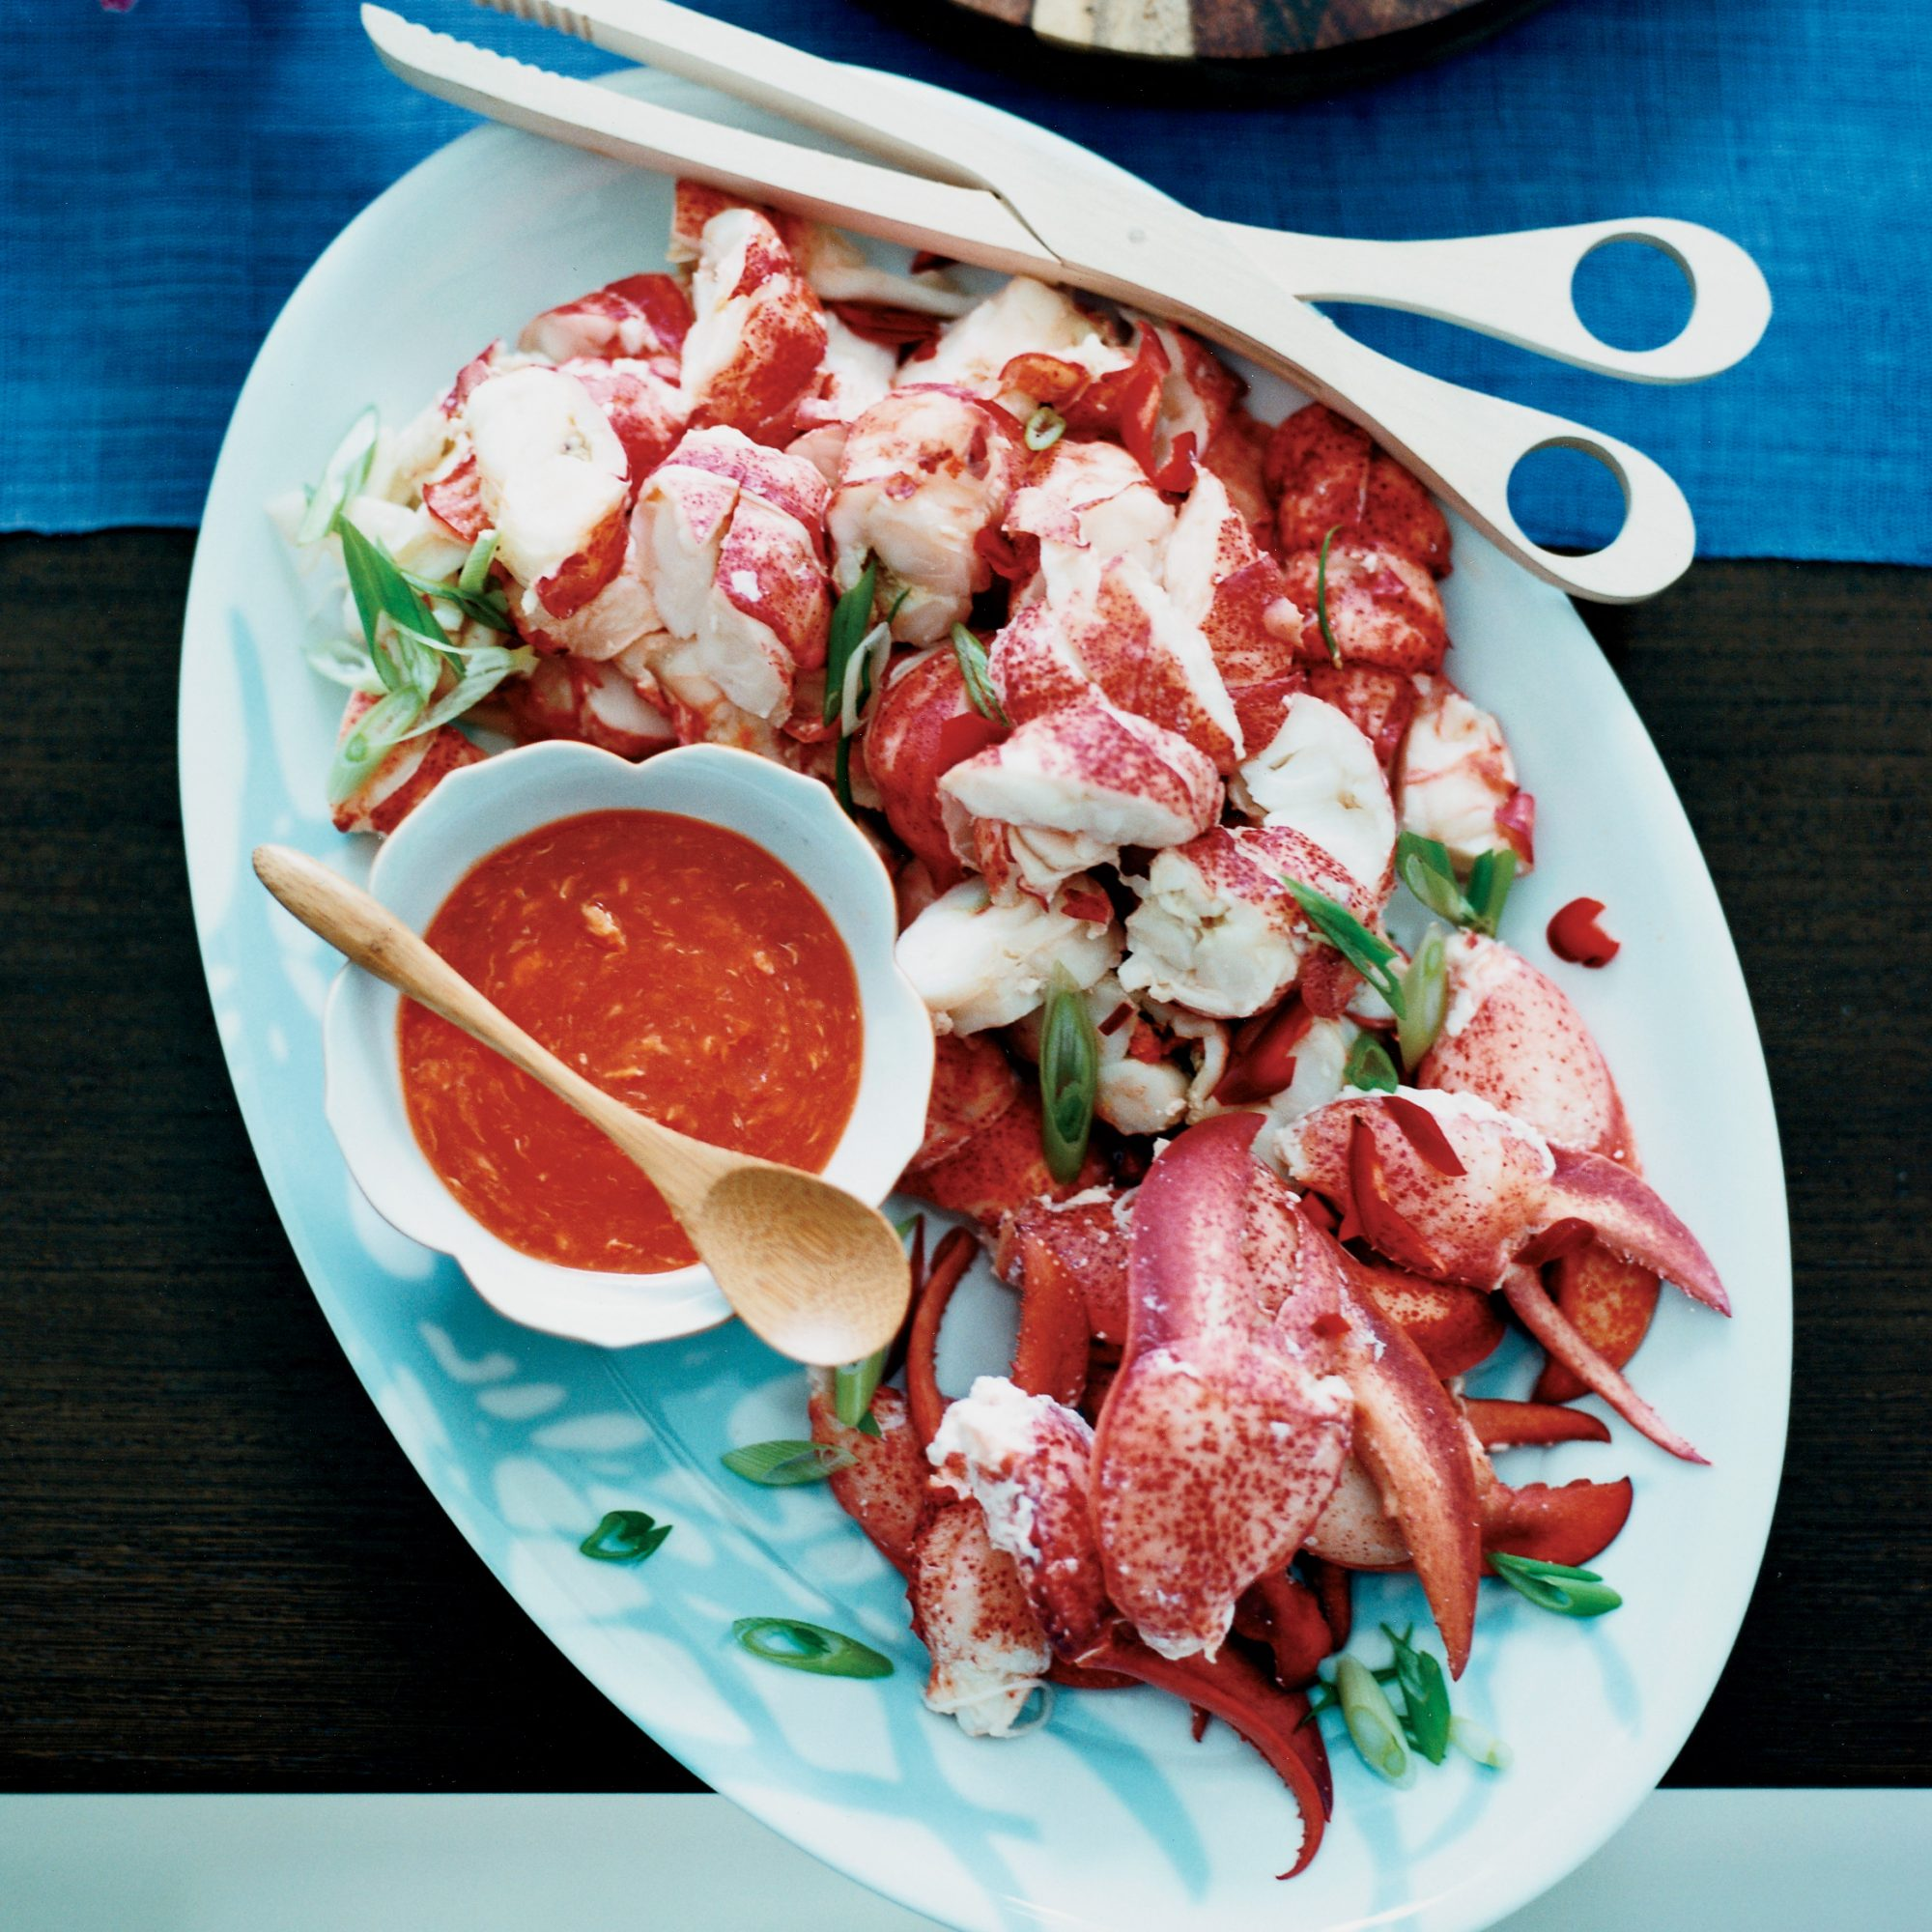 200905-r-chili-lobster.jpg